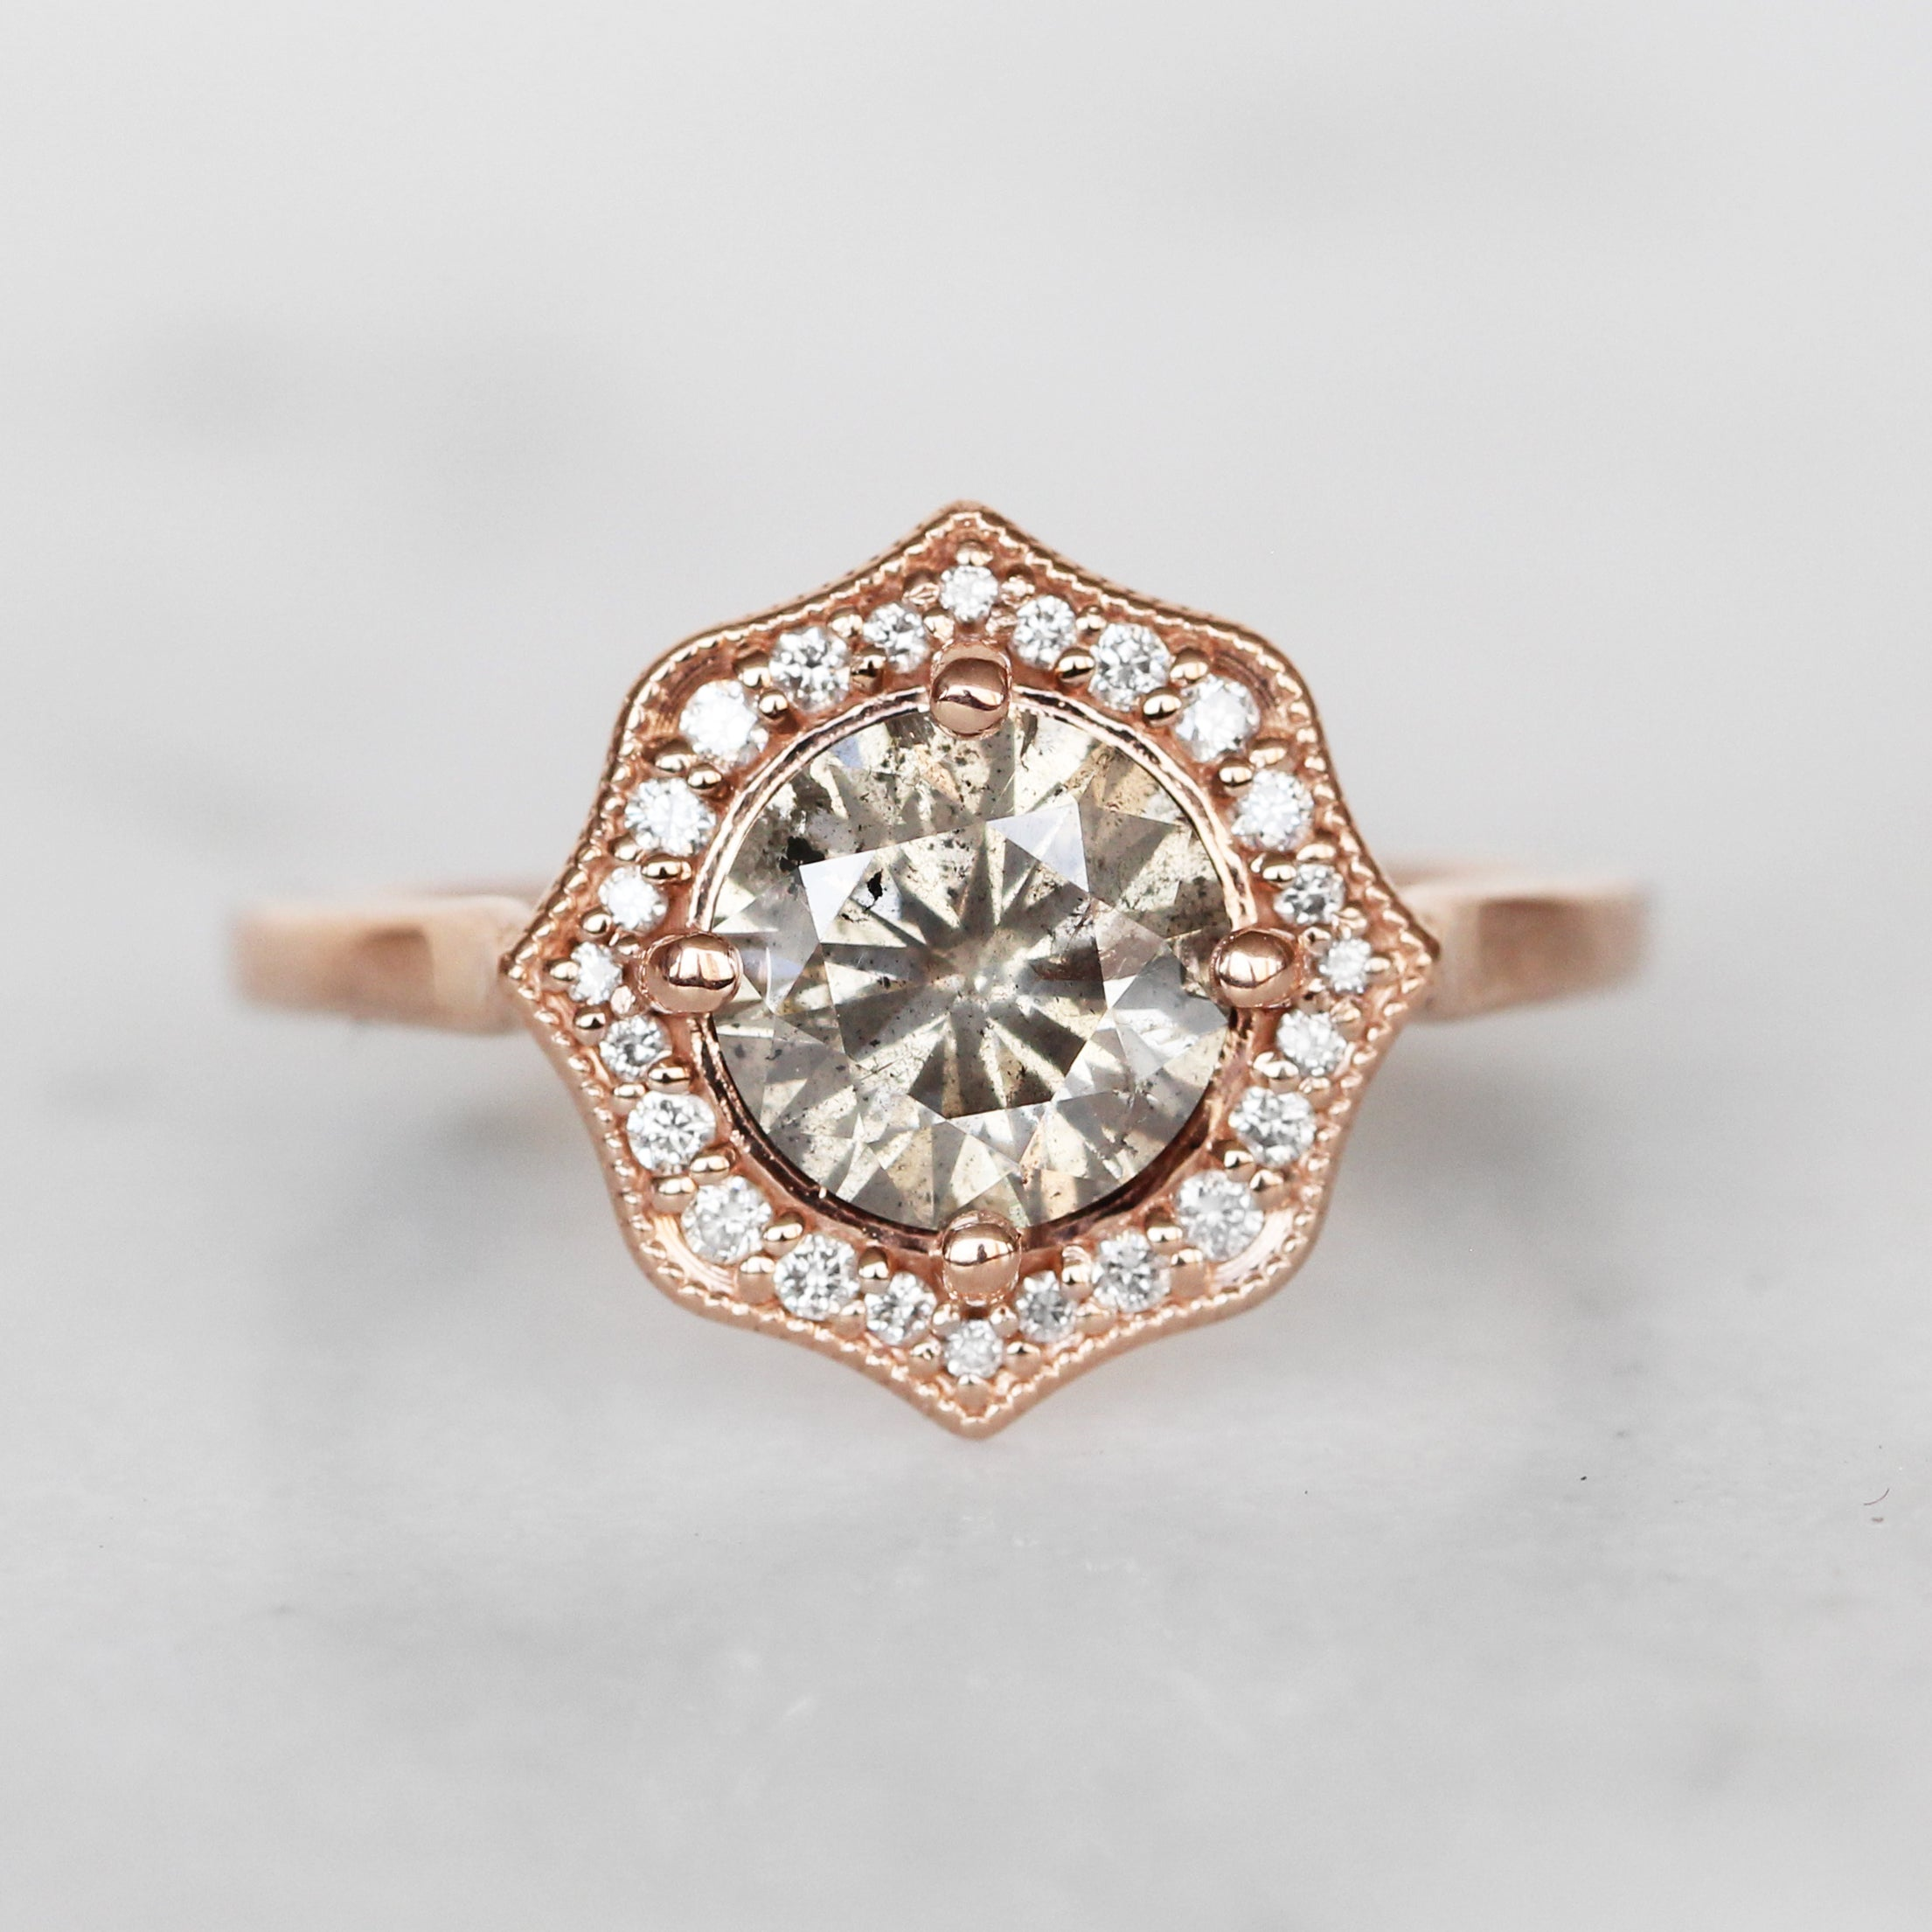 Mila Ring with GIA Certified 1.57 Carat Round Celestial Diamond in 14k Rose Gold - Ready to Size and Ship - Celestial Diamonds ® by Midwinter Co.